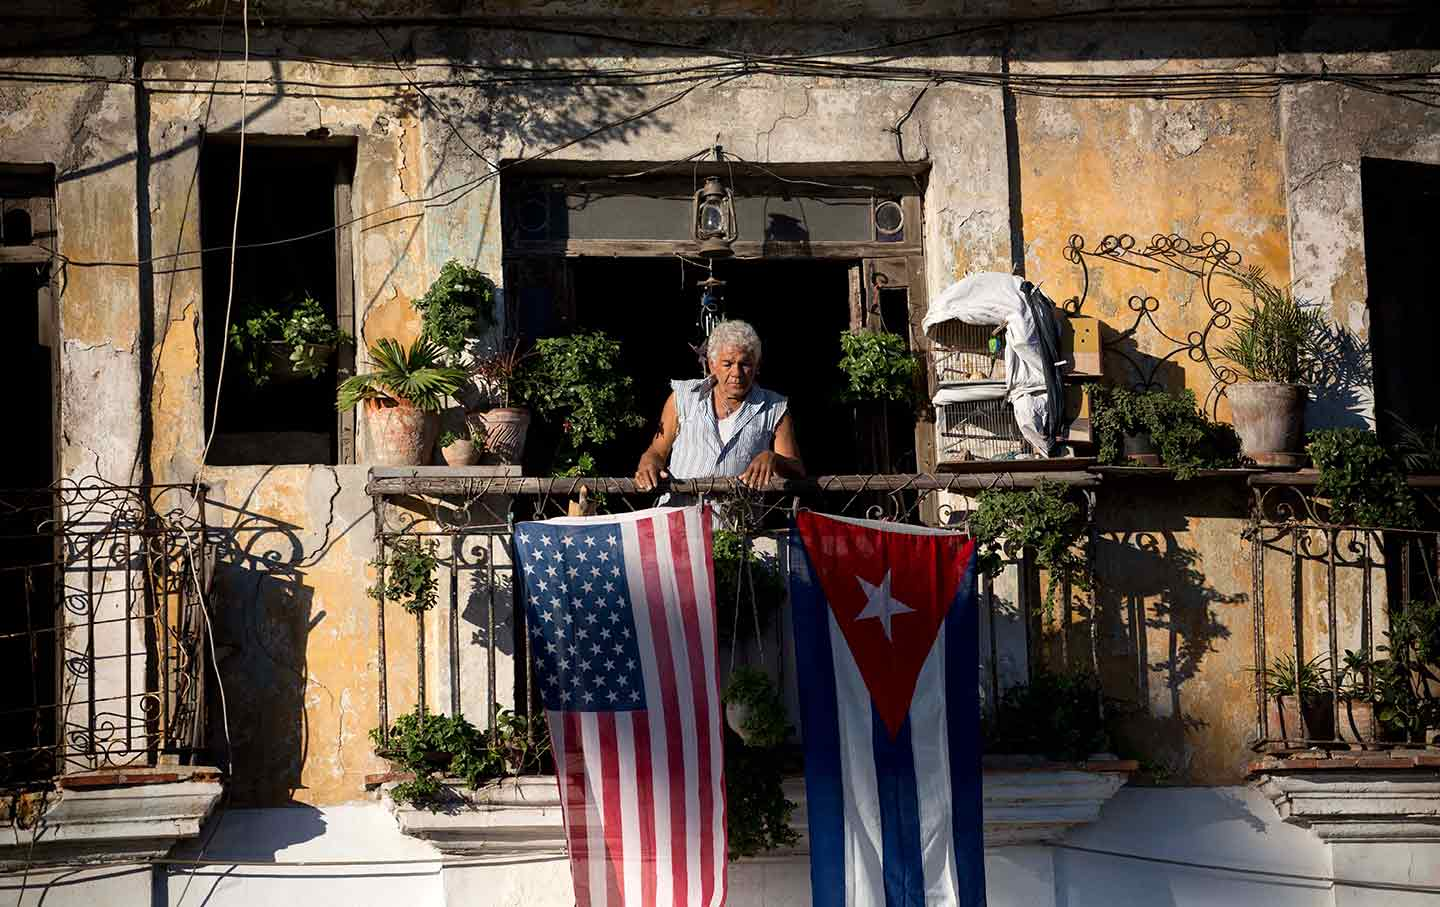 Diplomatic Relations with Cuba